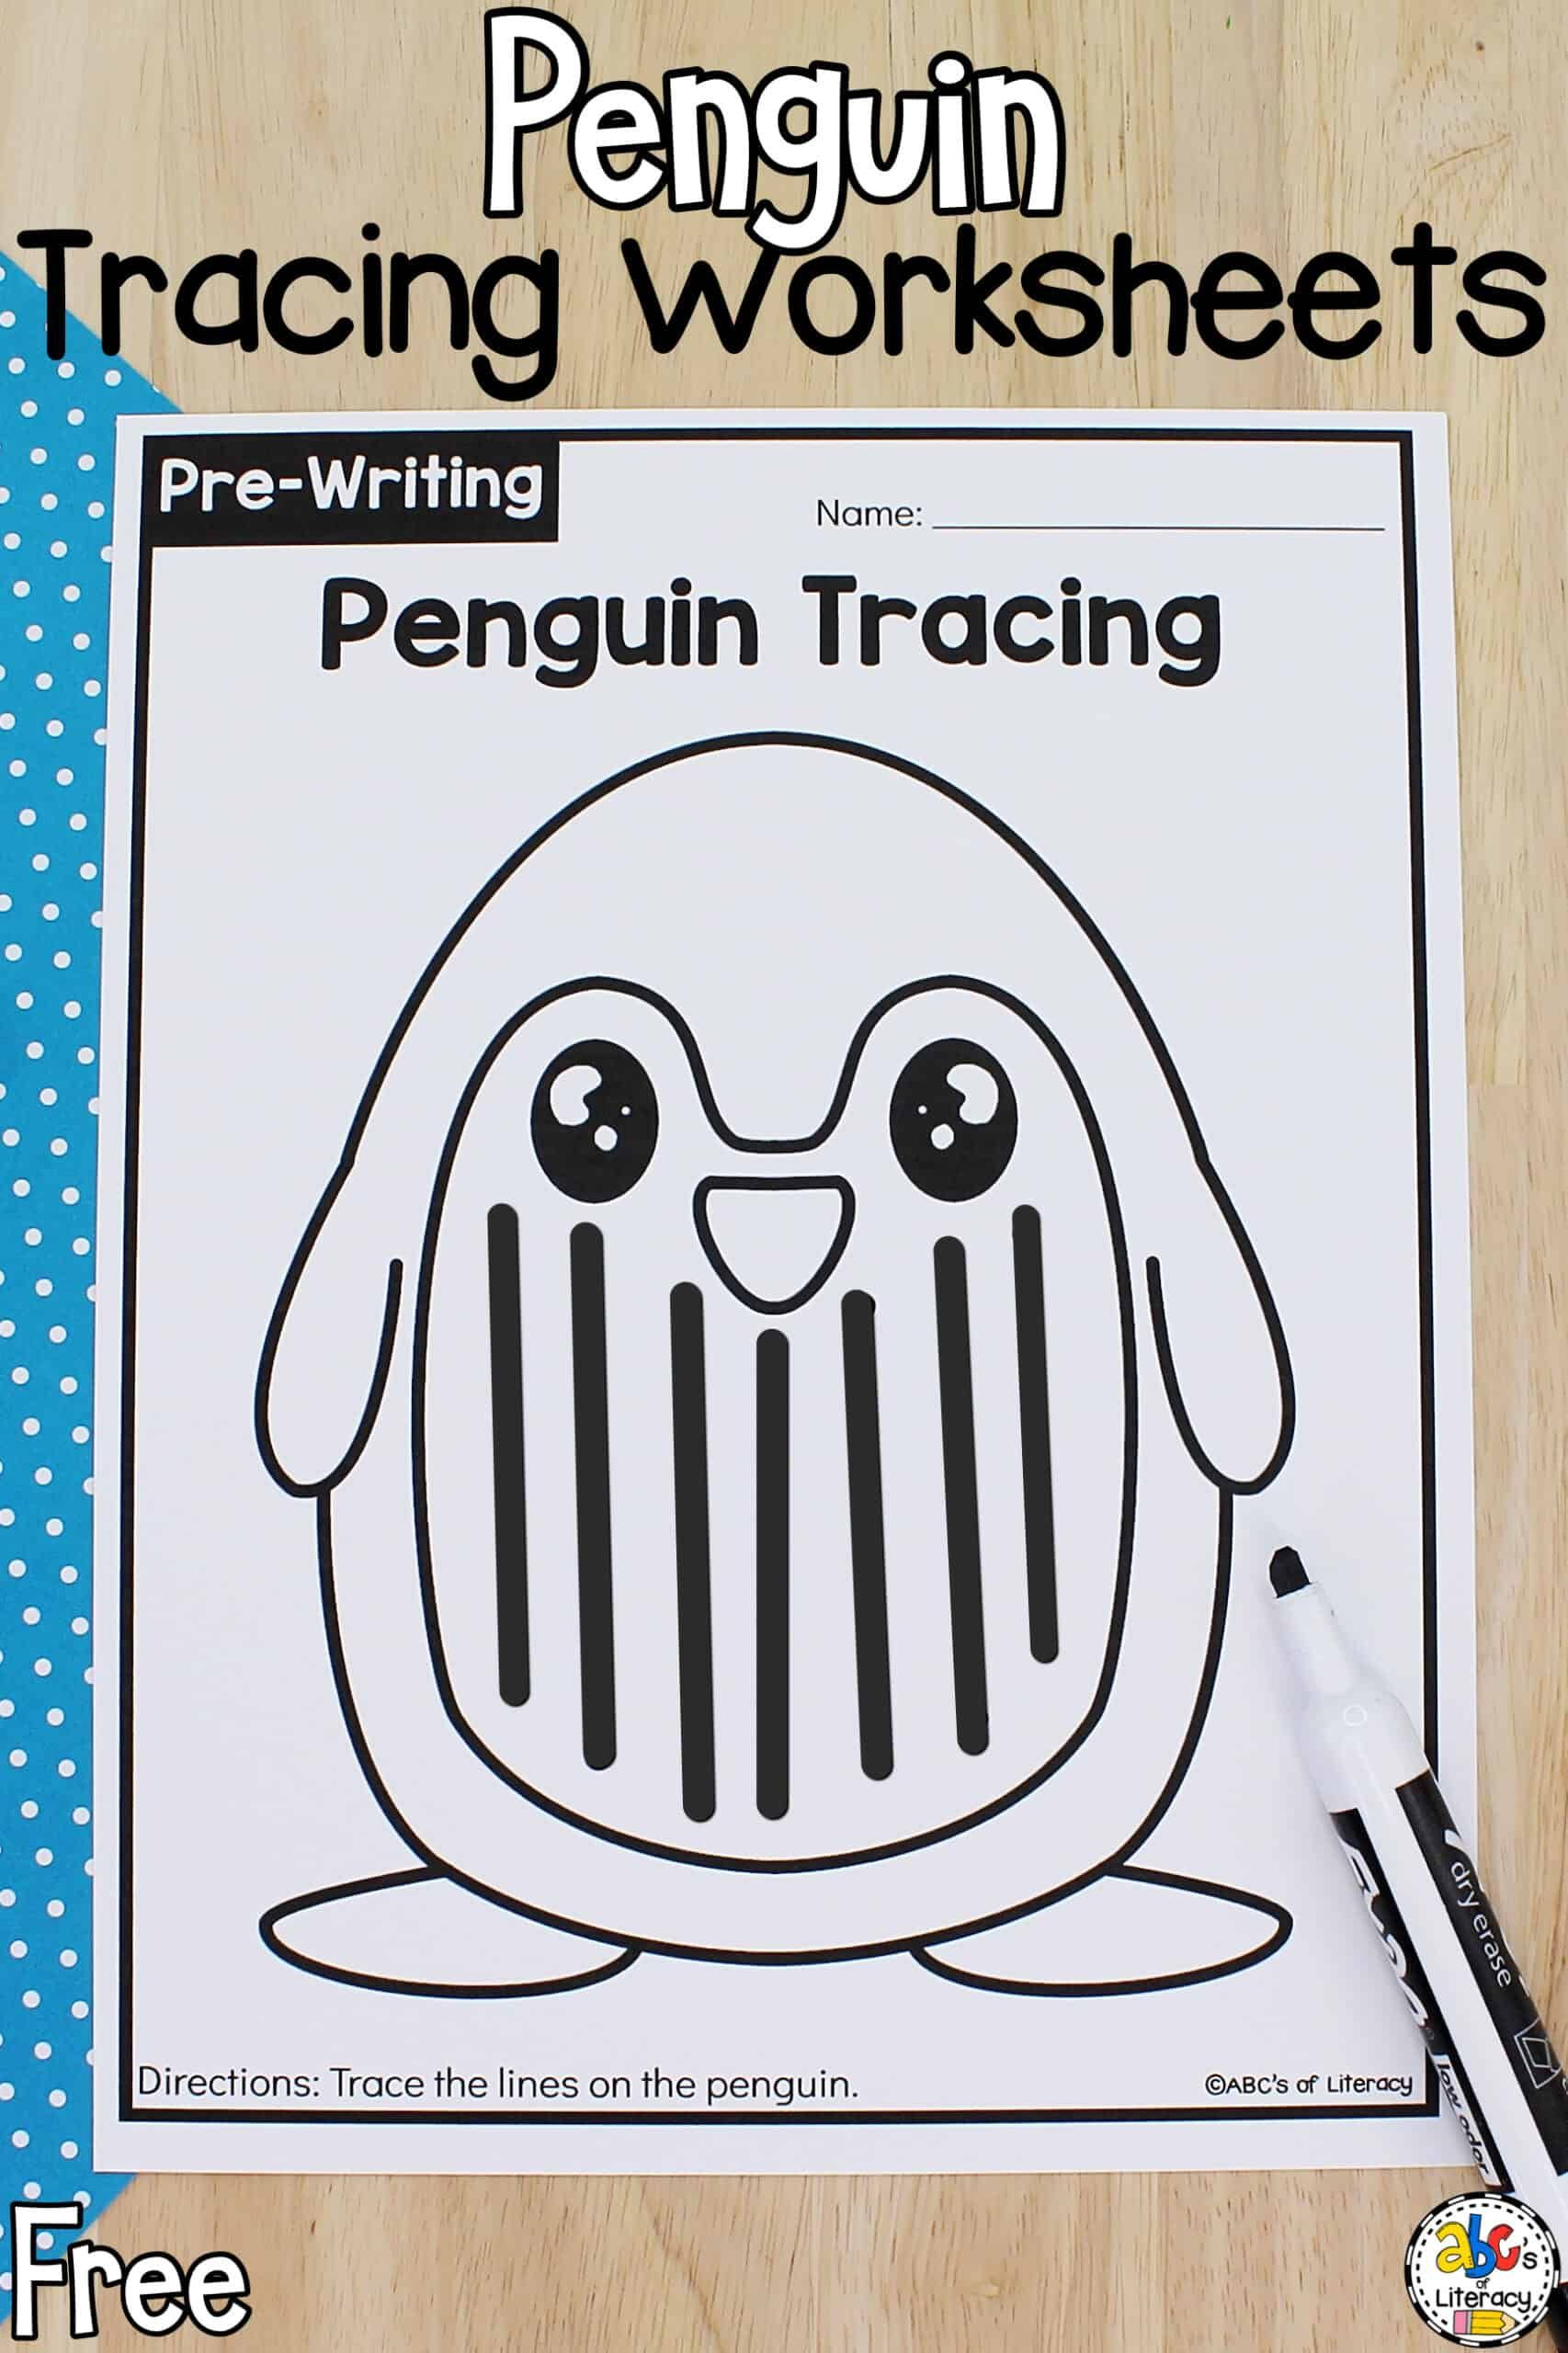 Penguin Tracing Worksheets For Preschool Pre Writing